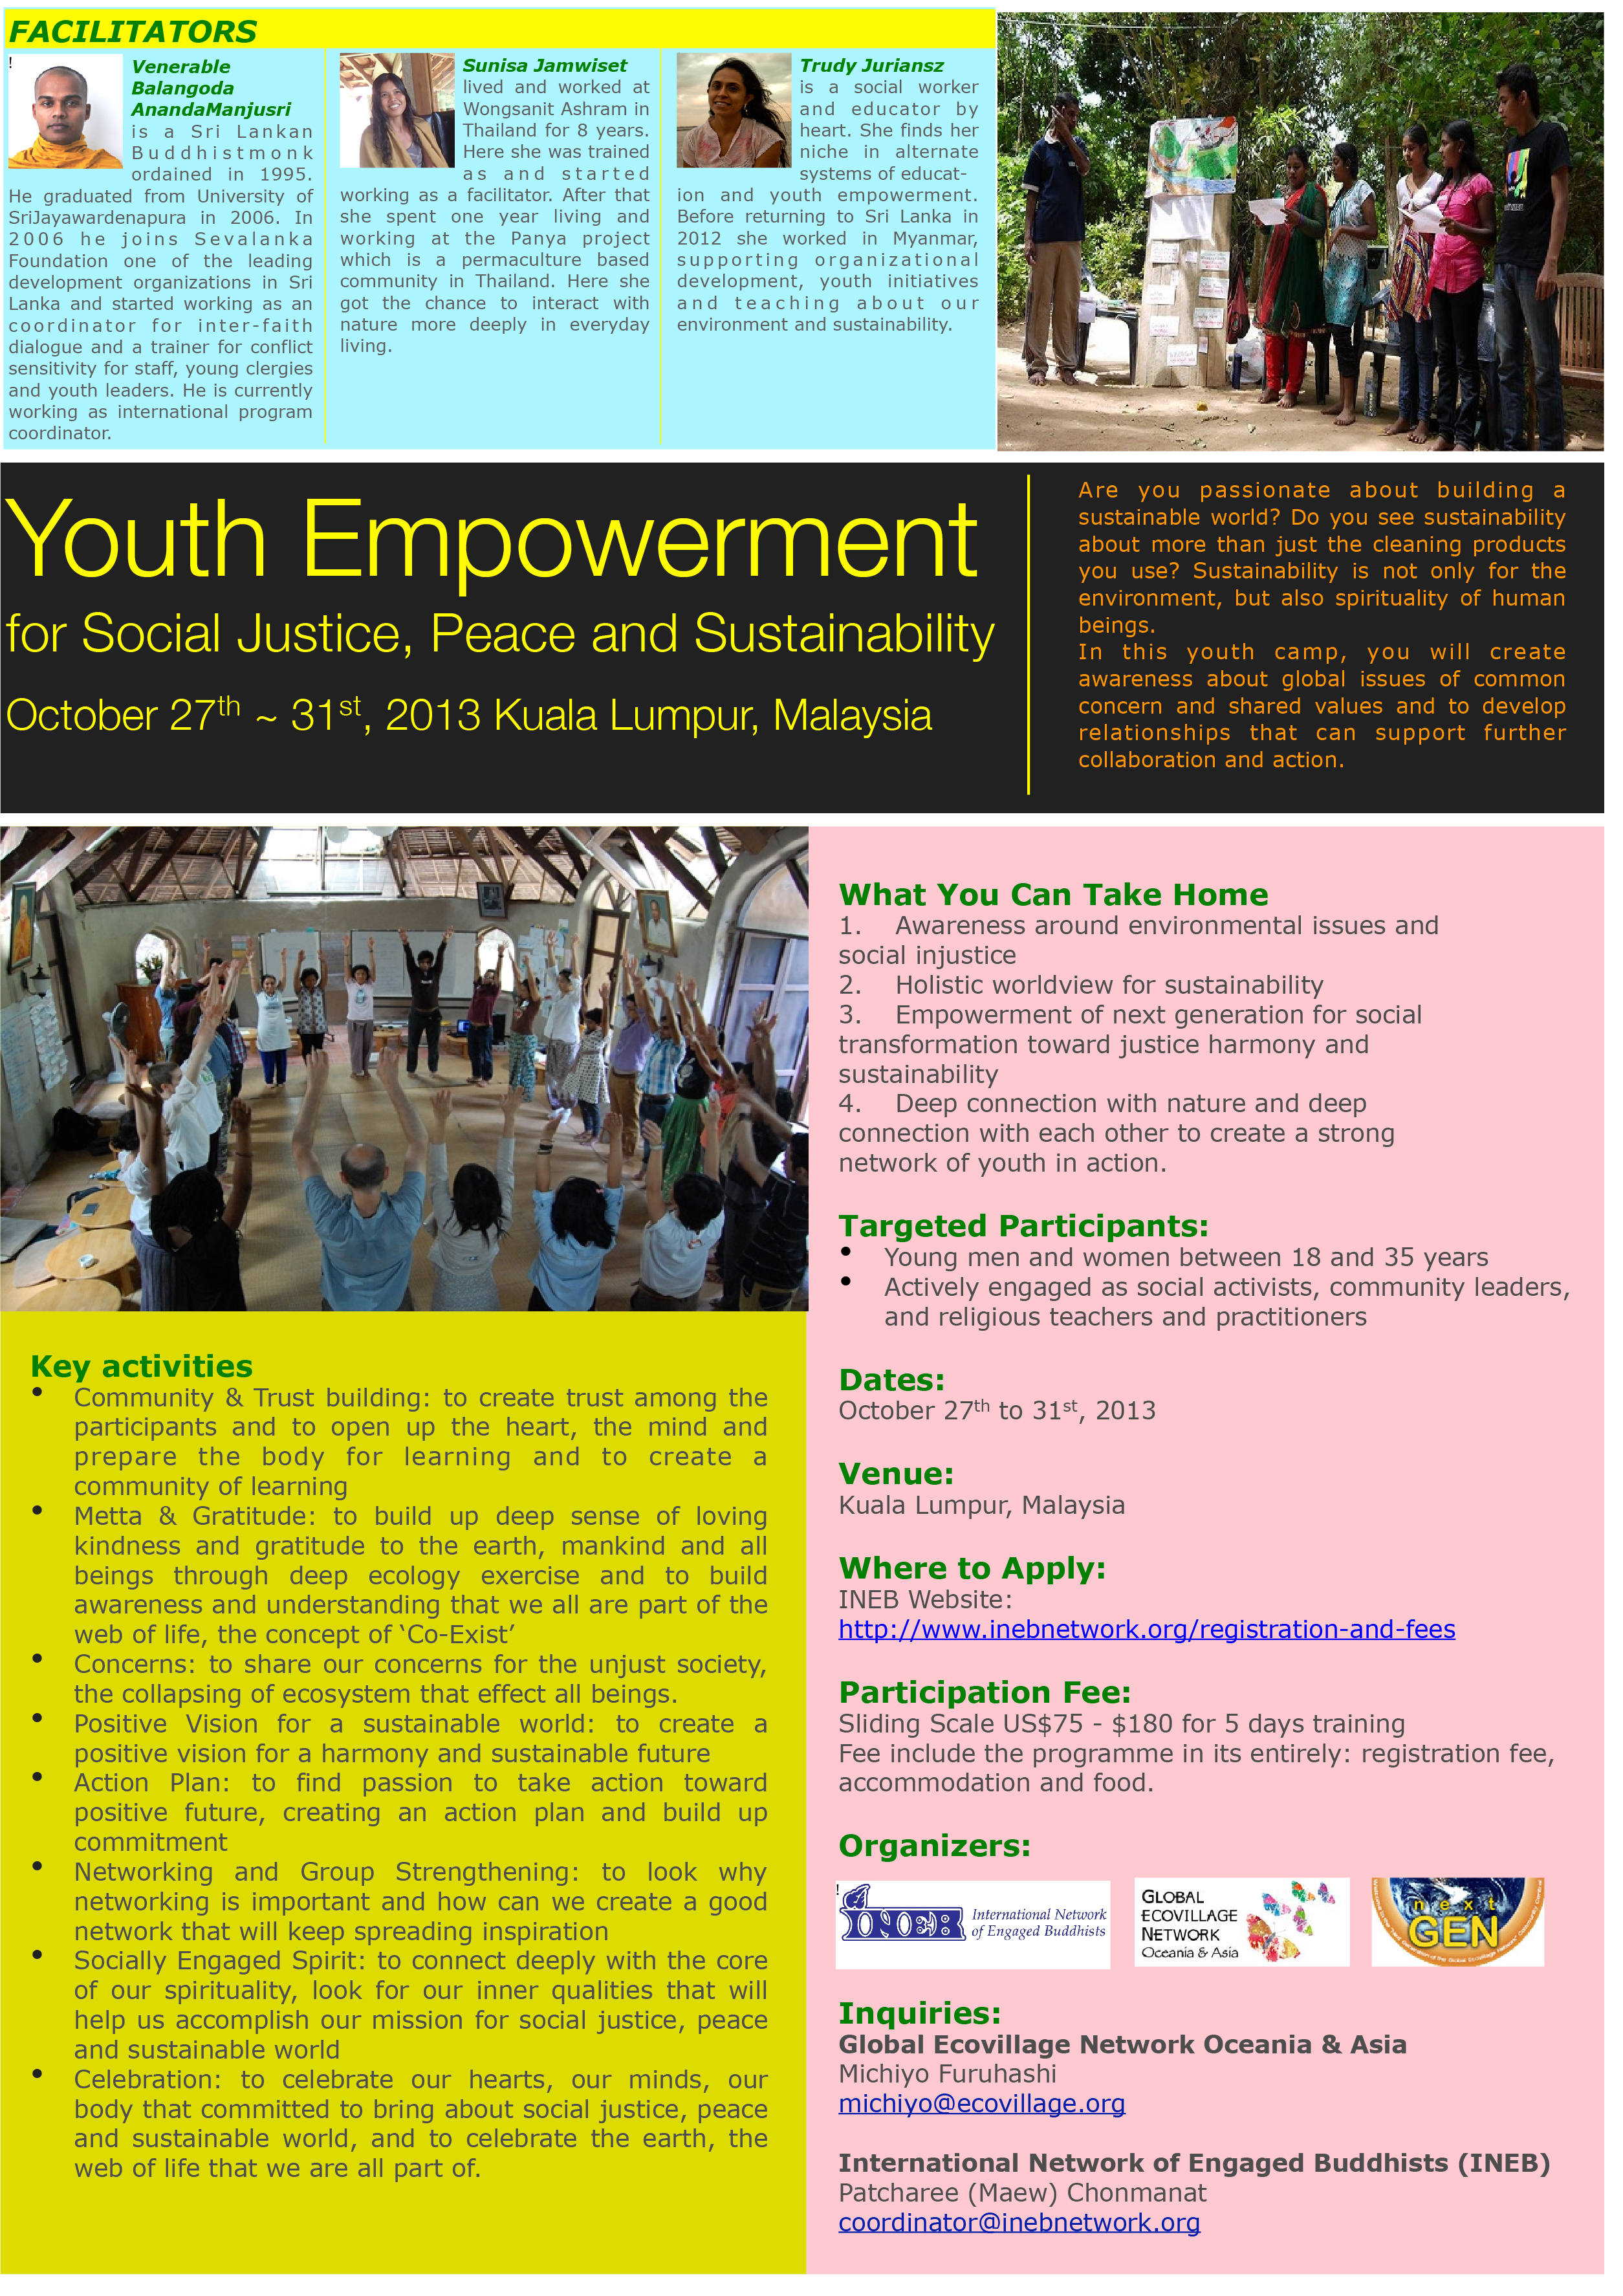 poster_youthempowerment